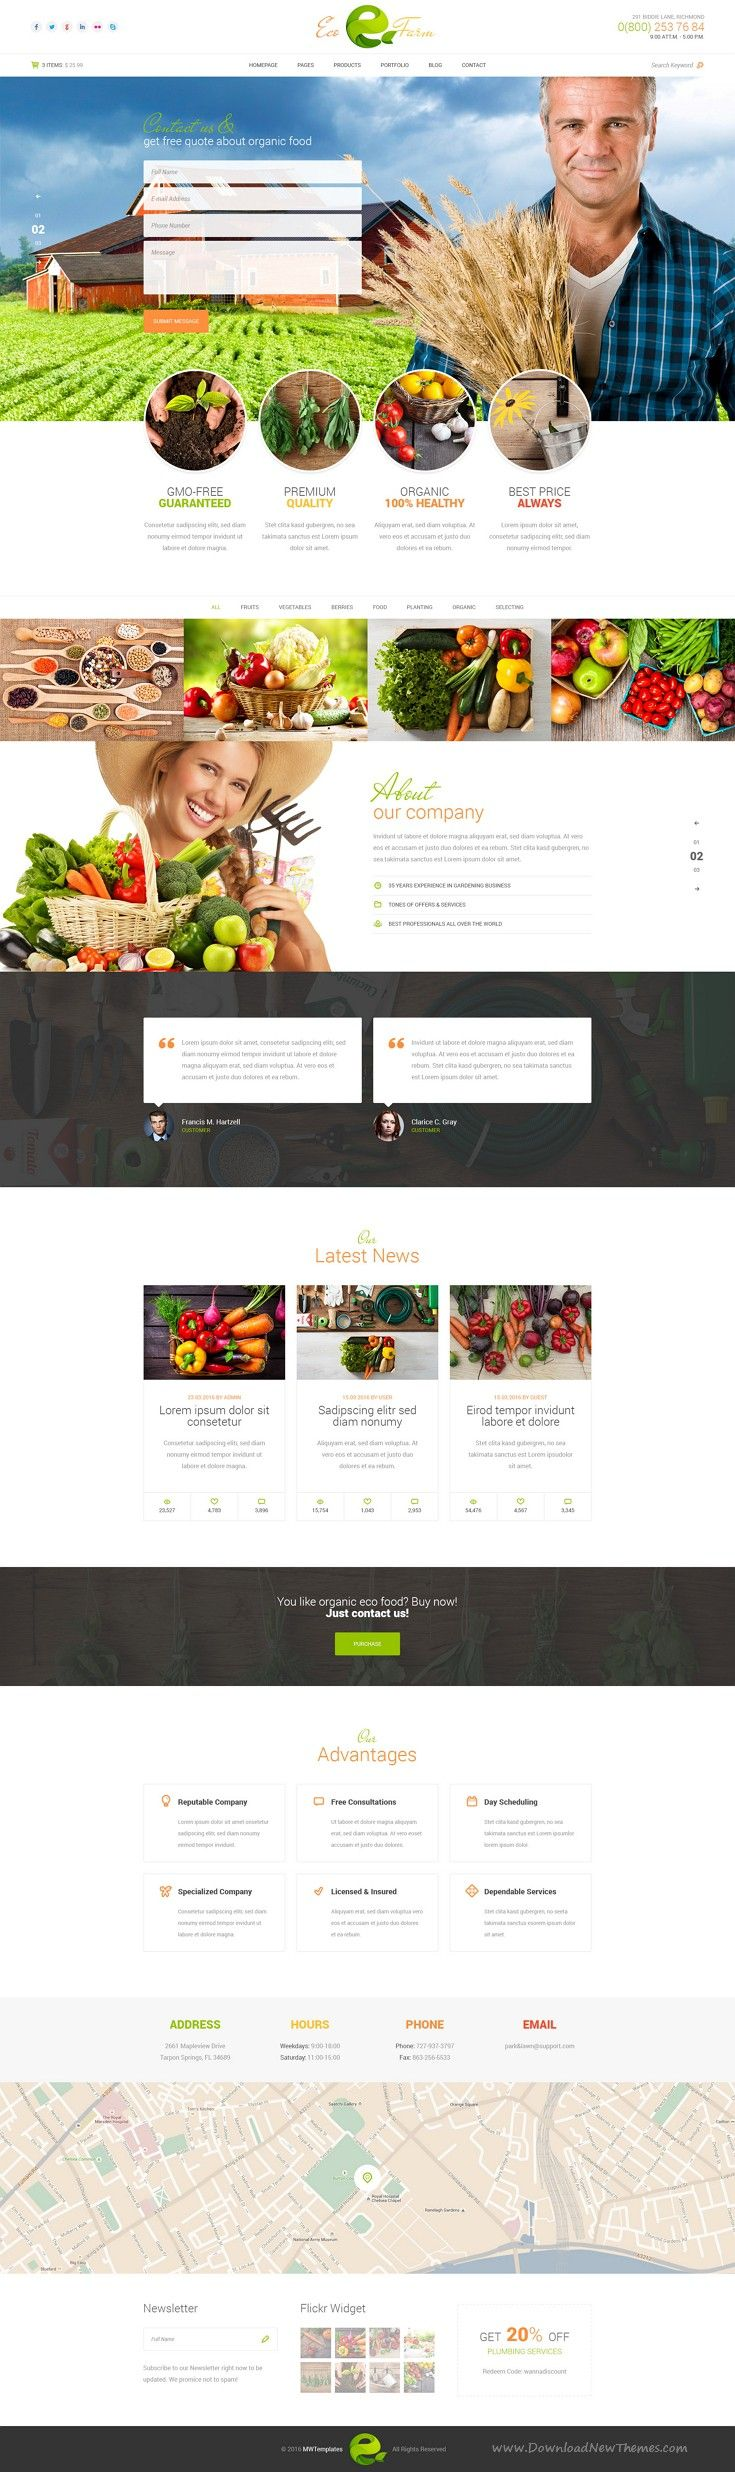 Eco Farm is a bright and eye catching #PSD template for farming, #organic food store, cattle farm or #agriculture company #website.